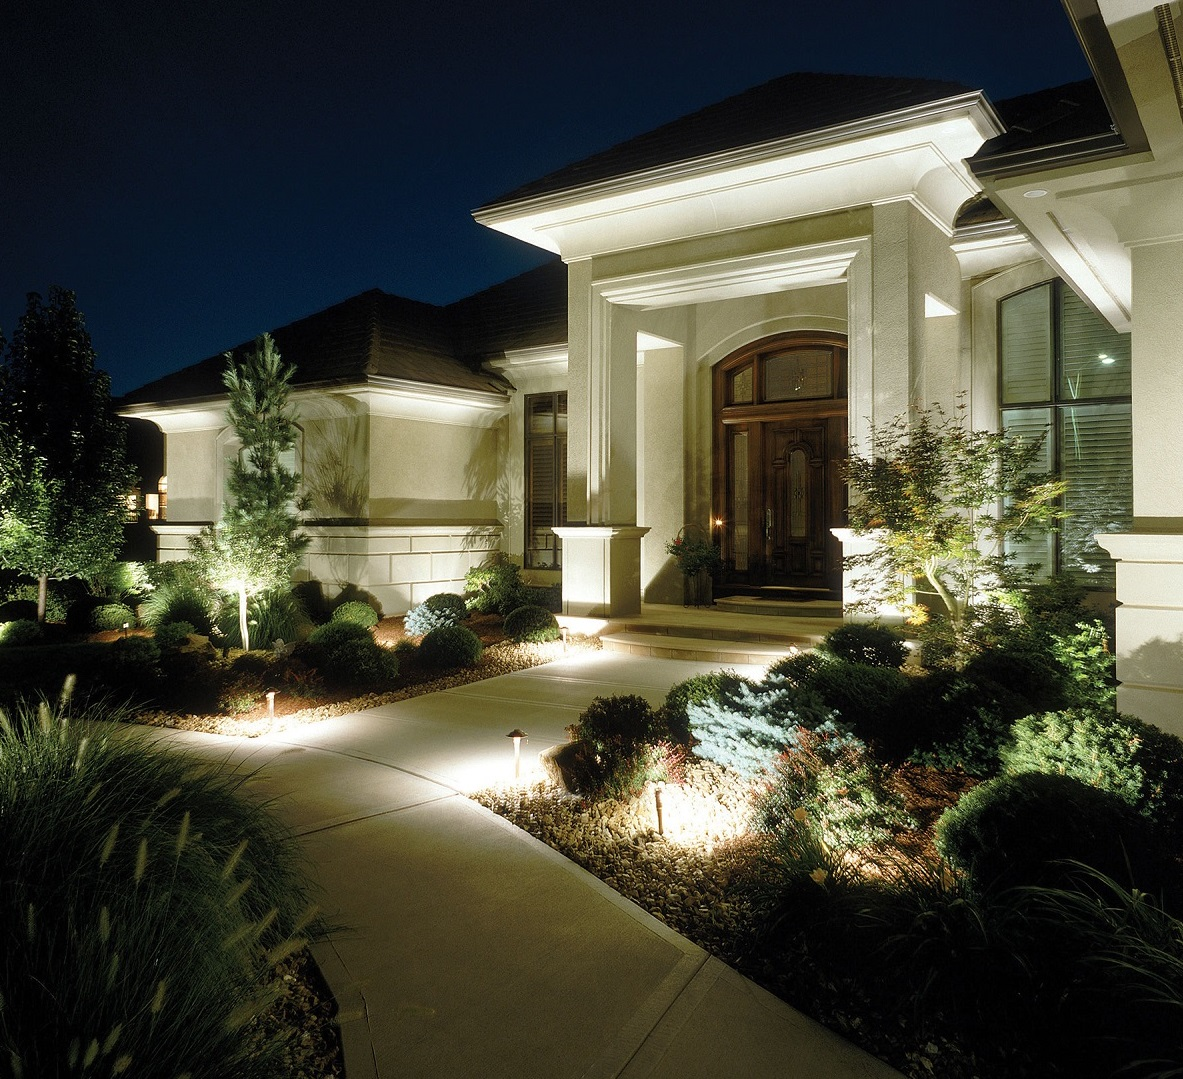 Beautiful The Philosophy Behind Our Custom Outdoor Lighting Designs Is The Core Idea  Of Focusing On The Effect, Not The Fixture. This Means Your Homeu0027s  Architecture, ...